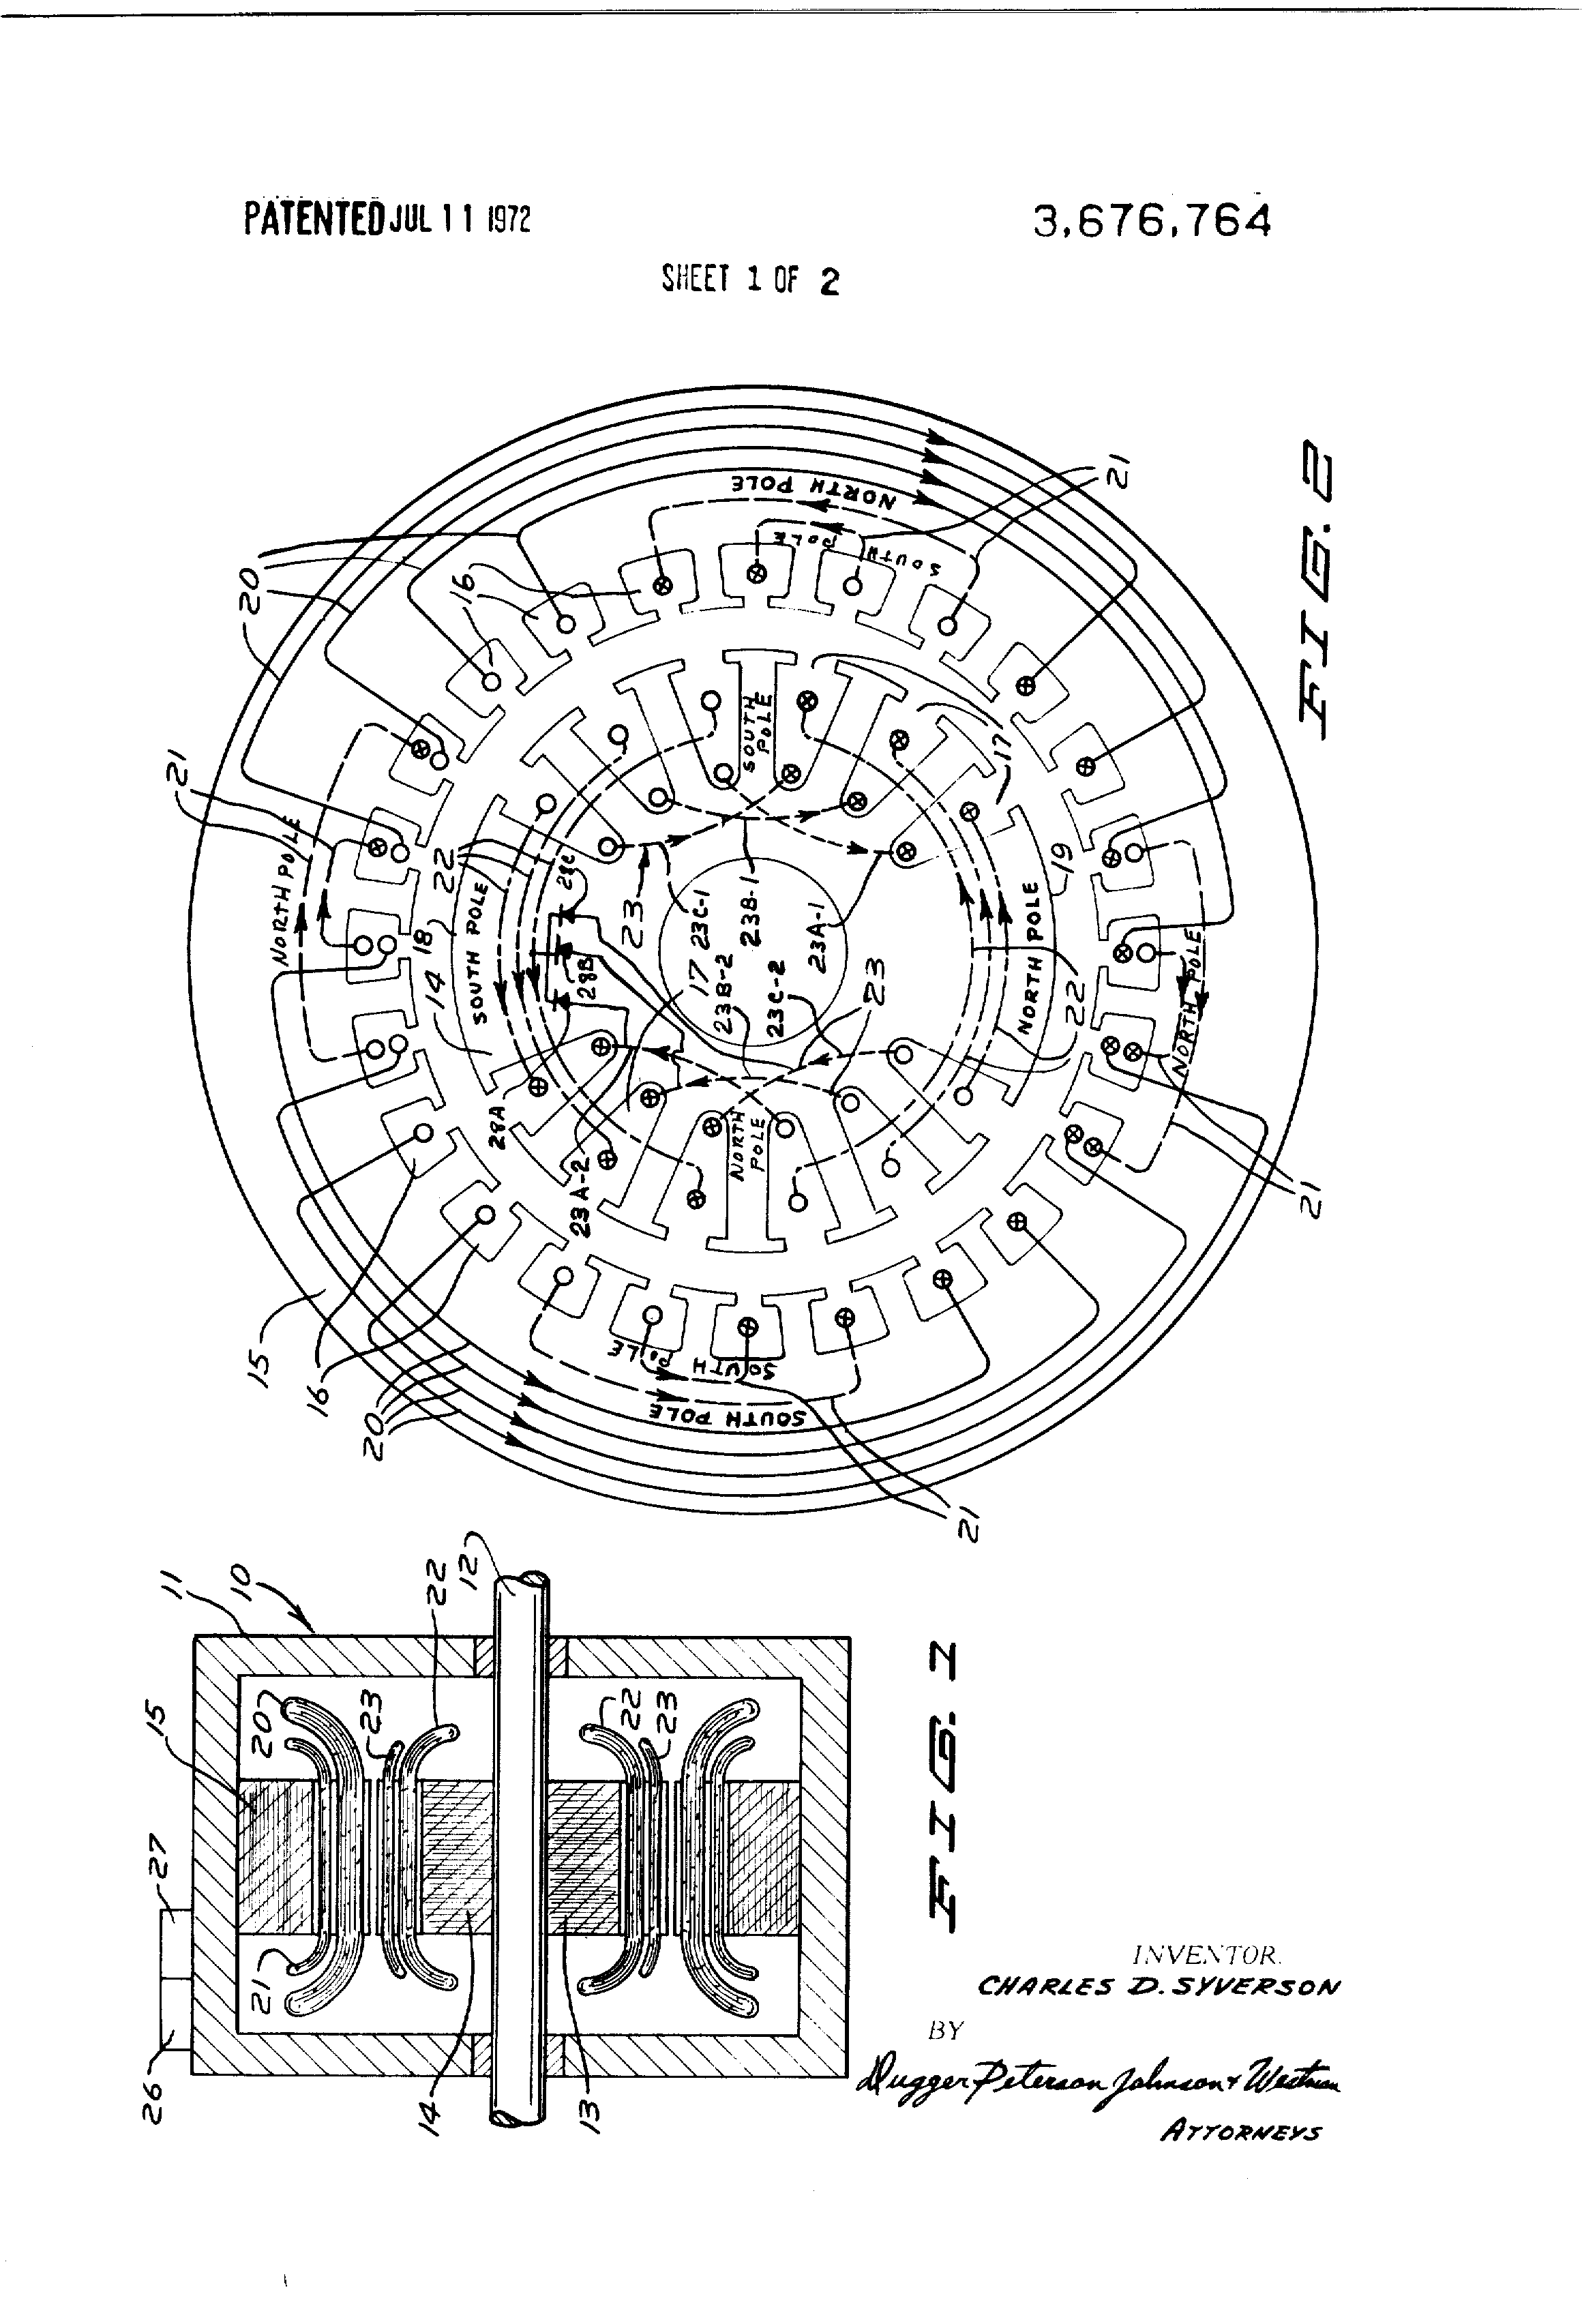 11 Pole Stator Wiring Diagram | Wiring Diagram 2019  Phase Stator Wiring Diagram on two speed motor diagram, 2 phase motor, 2 phase solenoid, 2 phase generator, 2 phase compressor, 2 phase 3 wire system, 2 phase electrical, 2 phase transformer diagram, 2 phase circuit, 3 phase motor connection diagram,